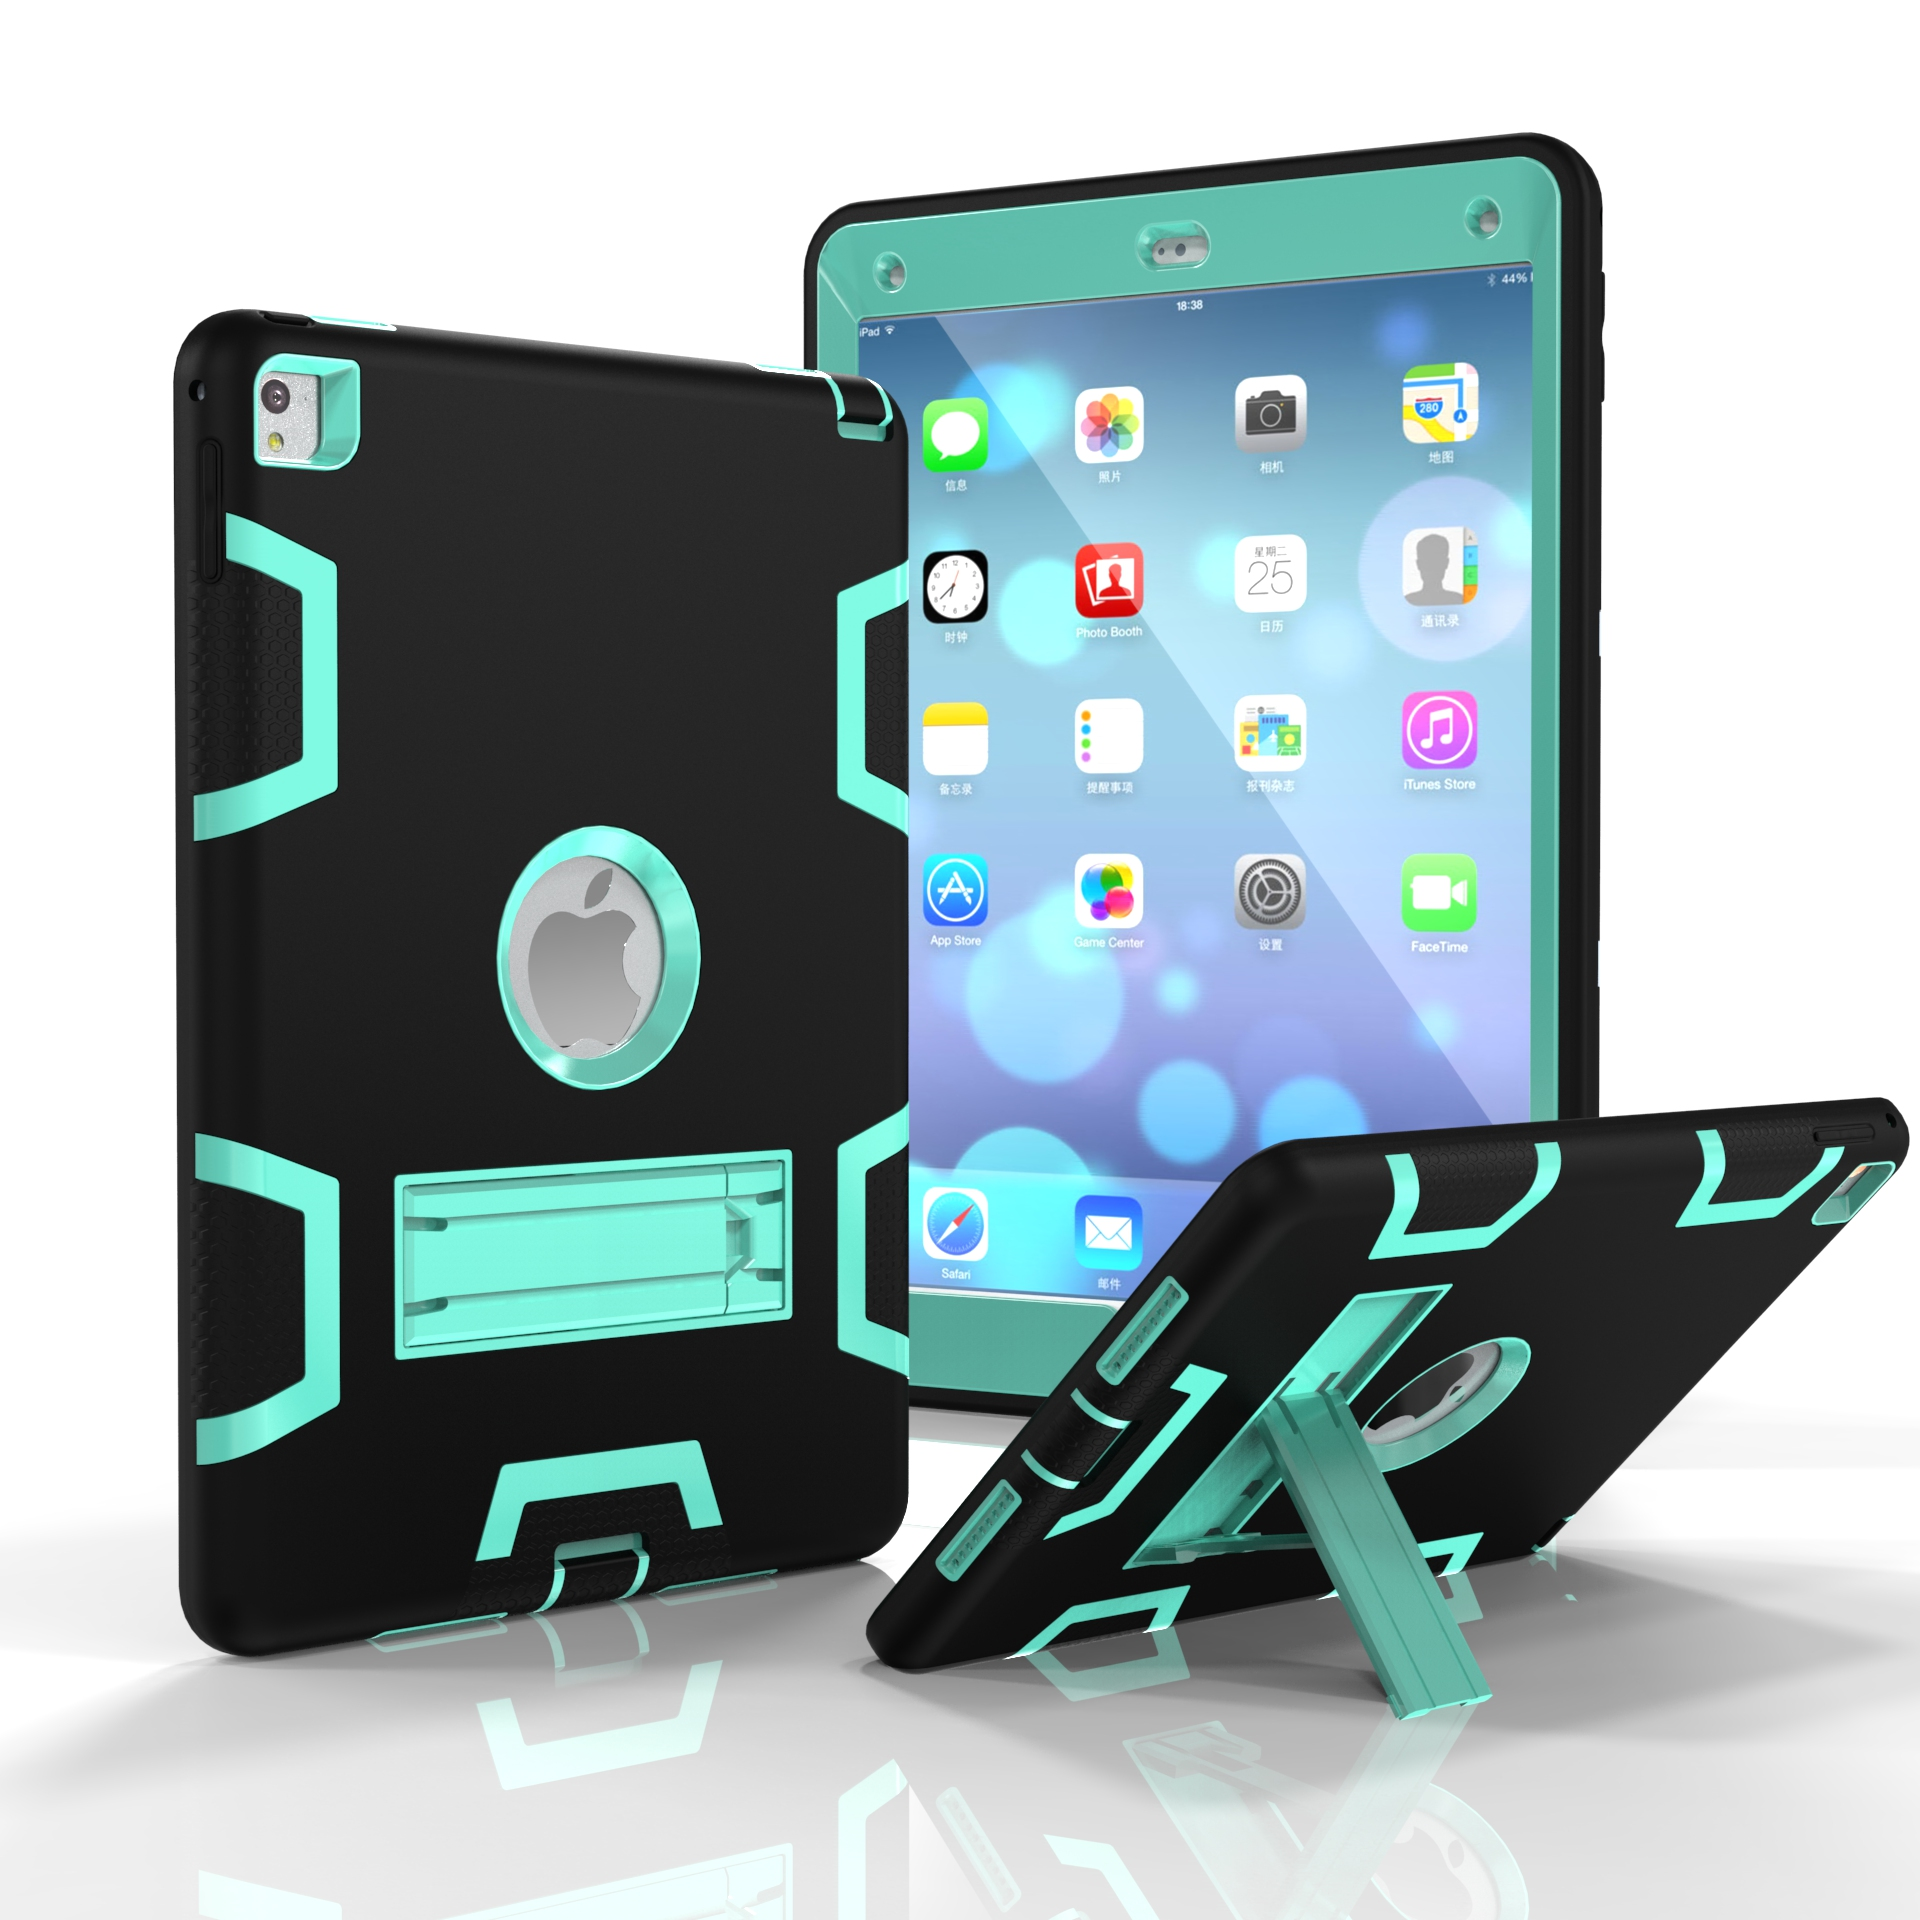 For iPad air2/iPad 6/iPad pro 9.7 2016 PC+ Silicone Hit Color Armor Case Tri-proof Shockproof Dustproof Anti-fall Protective Cover  Black + mint green